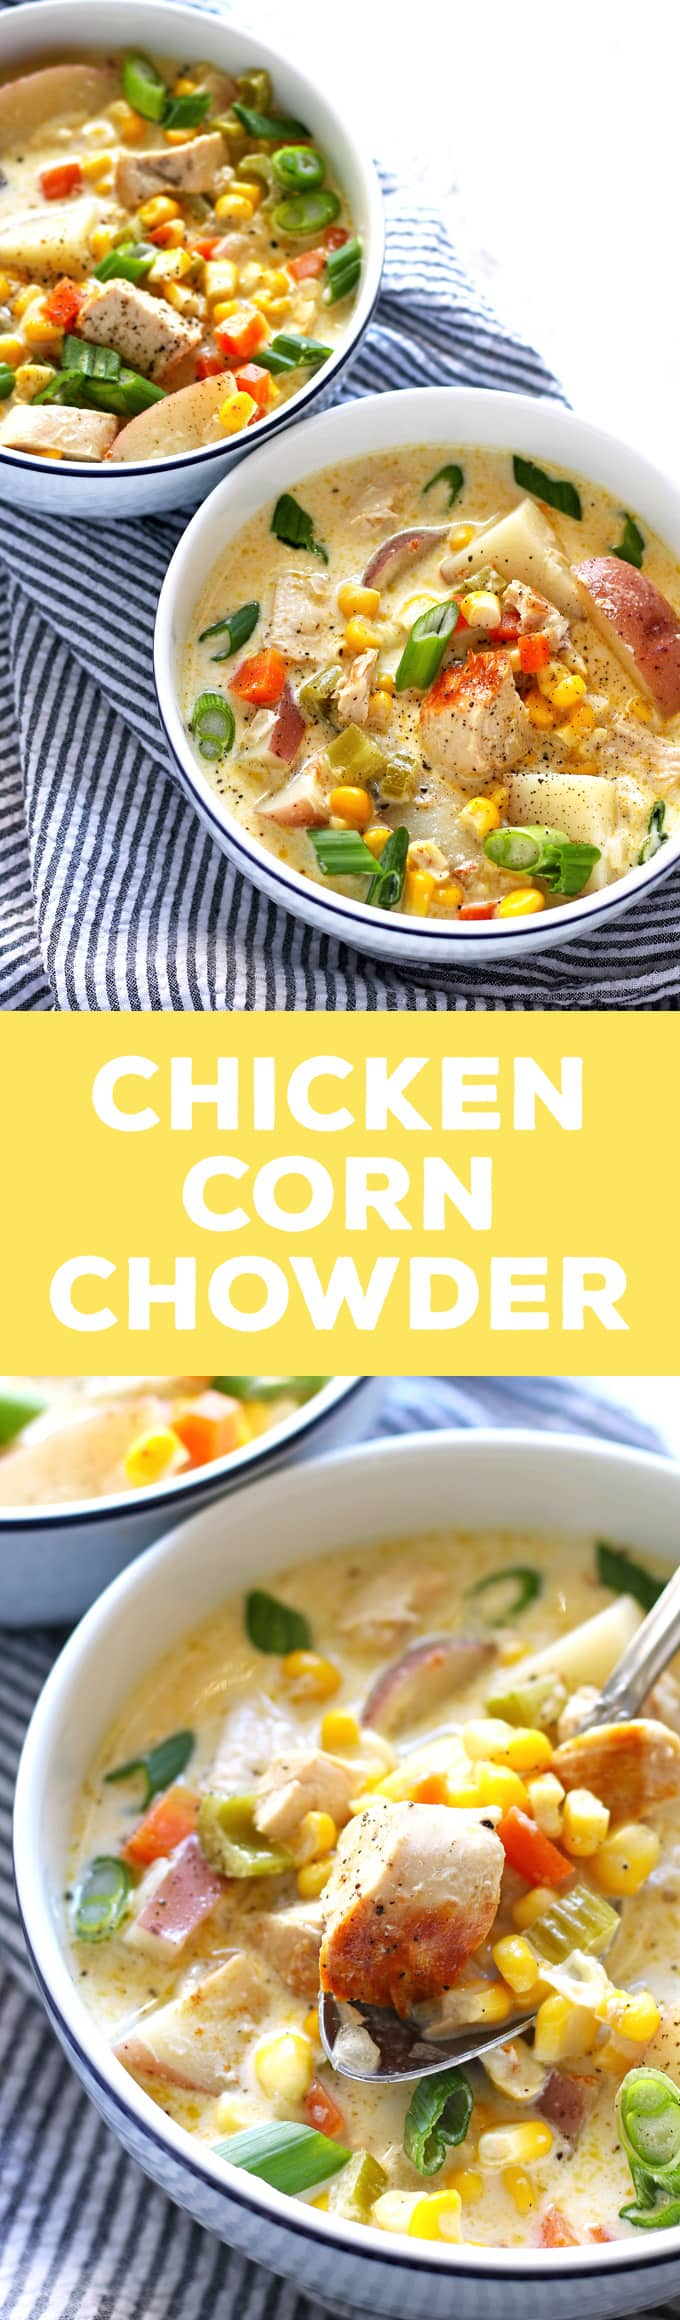 chicken corn chowder pin